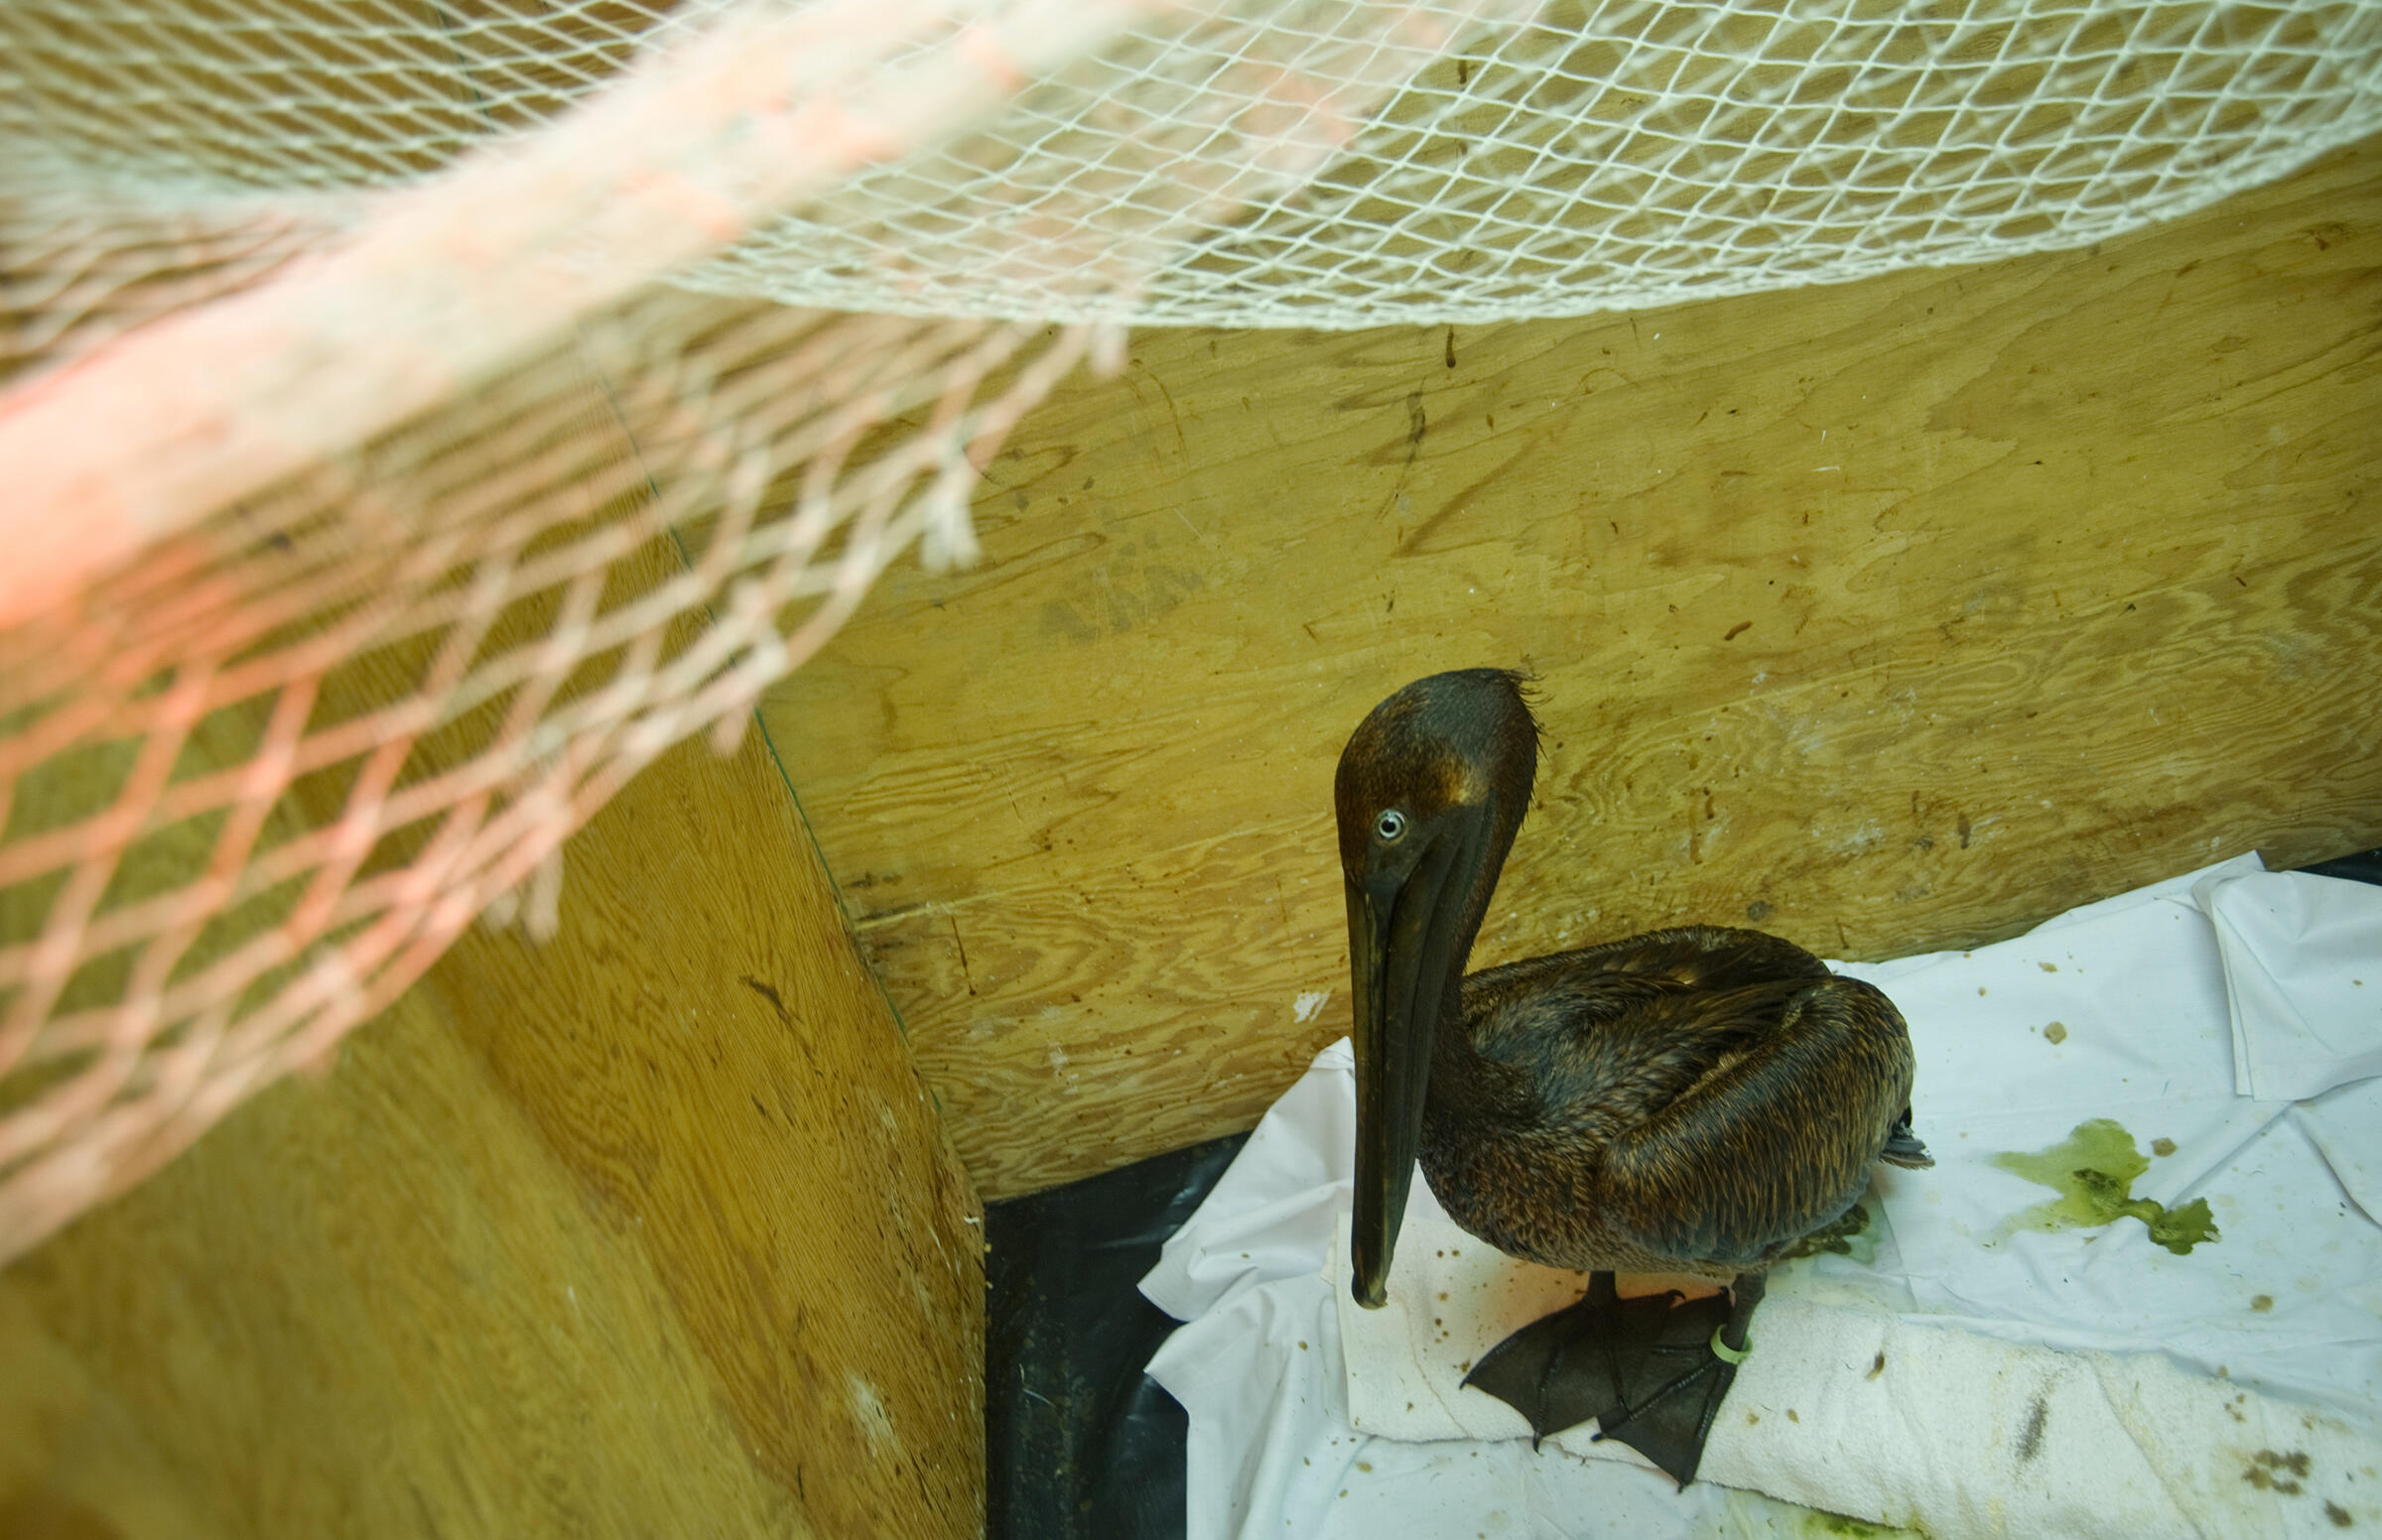 A Brown Pelican waits to be cleaned after the Deepwater Horizon spill in 2010. Kim Hubbard